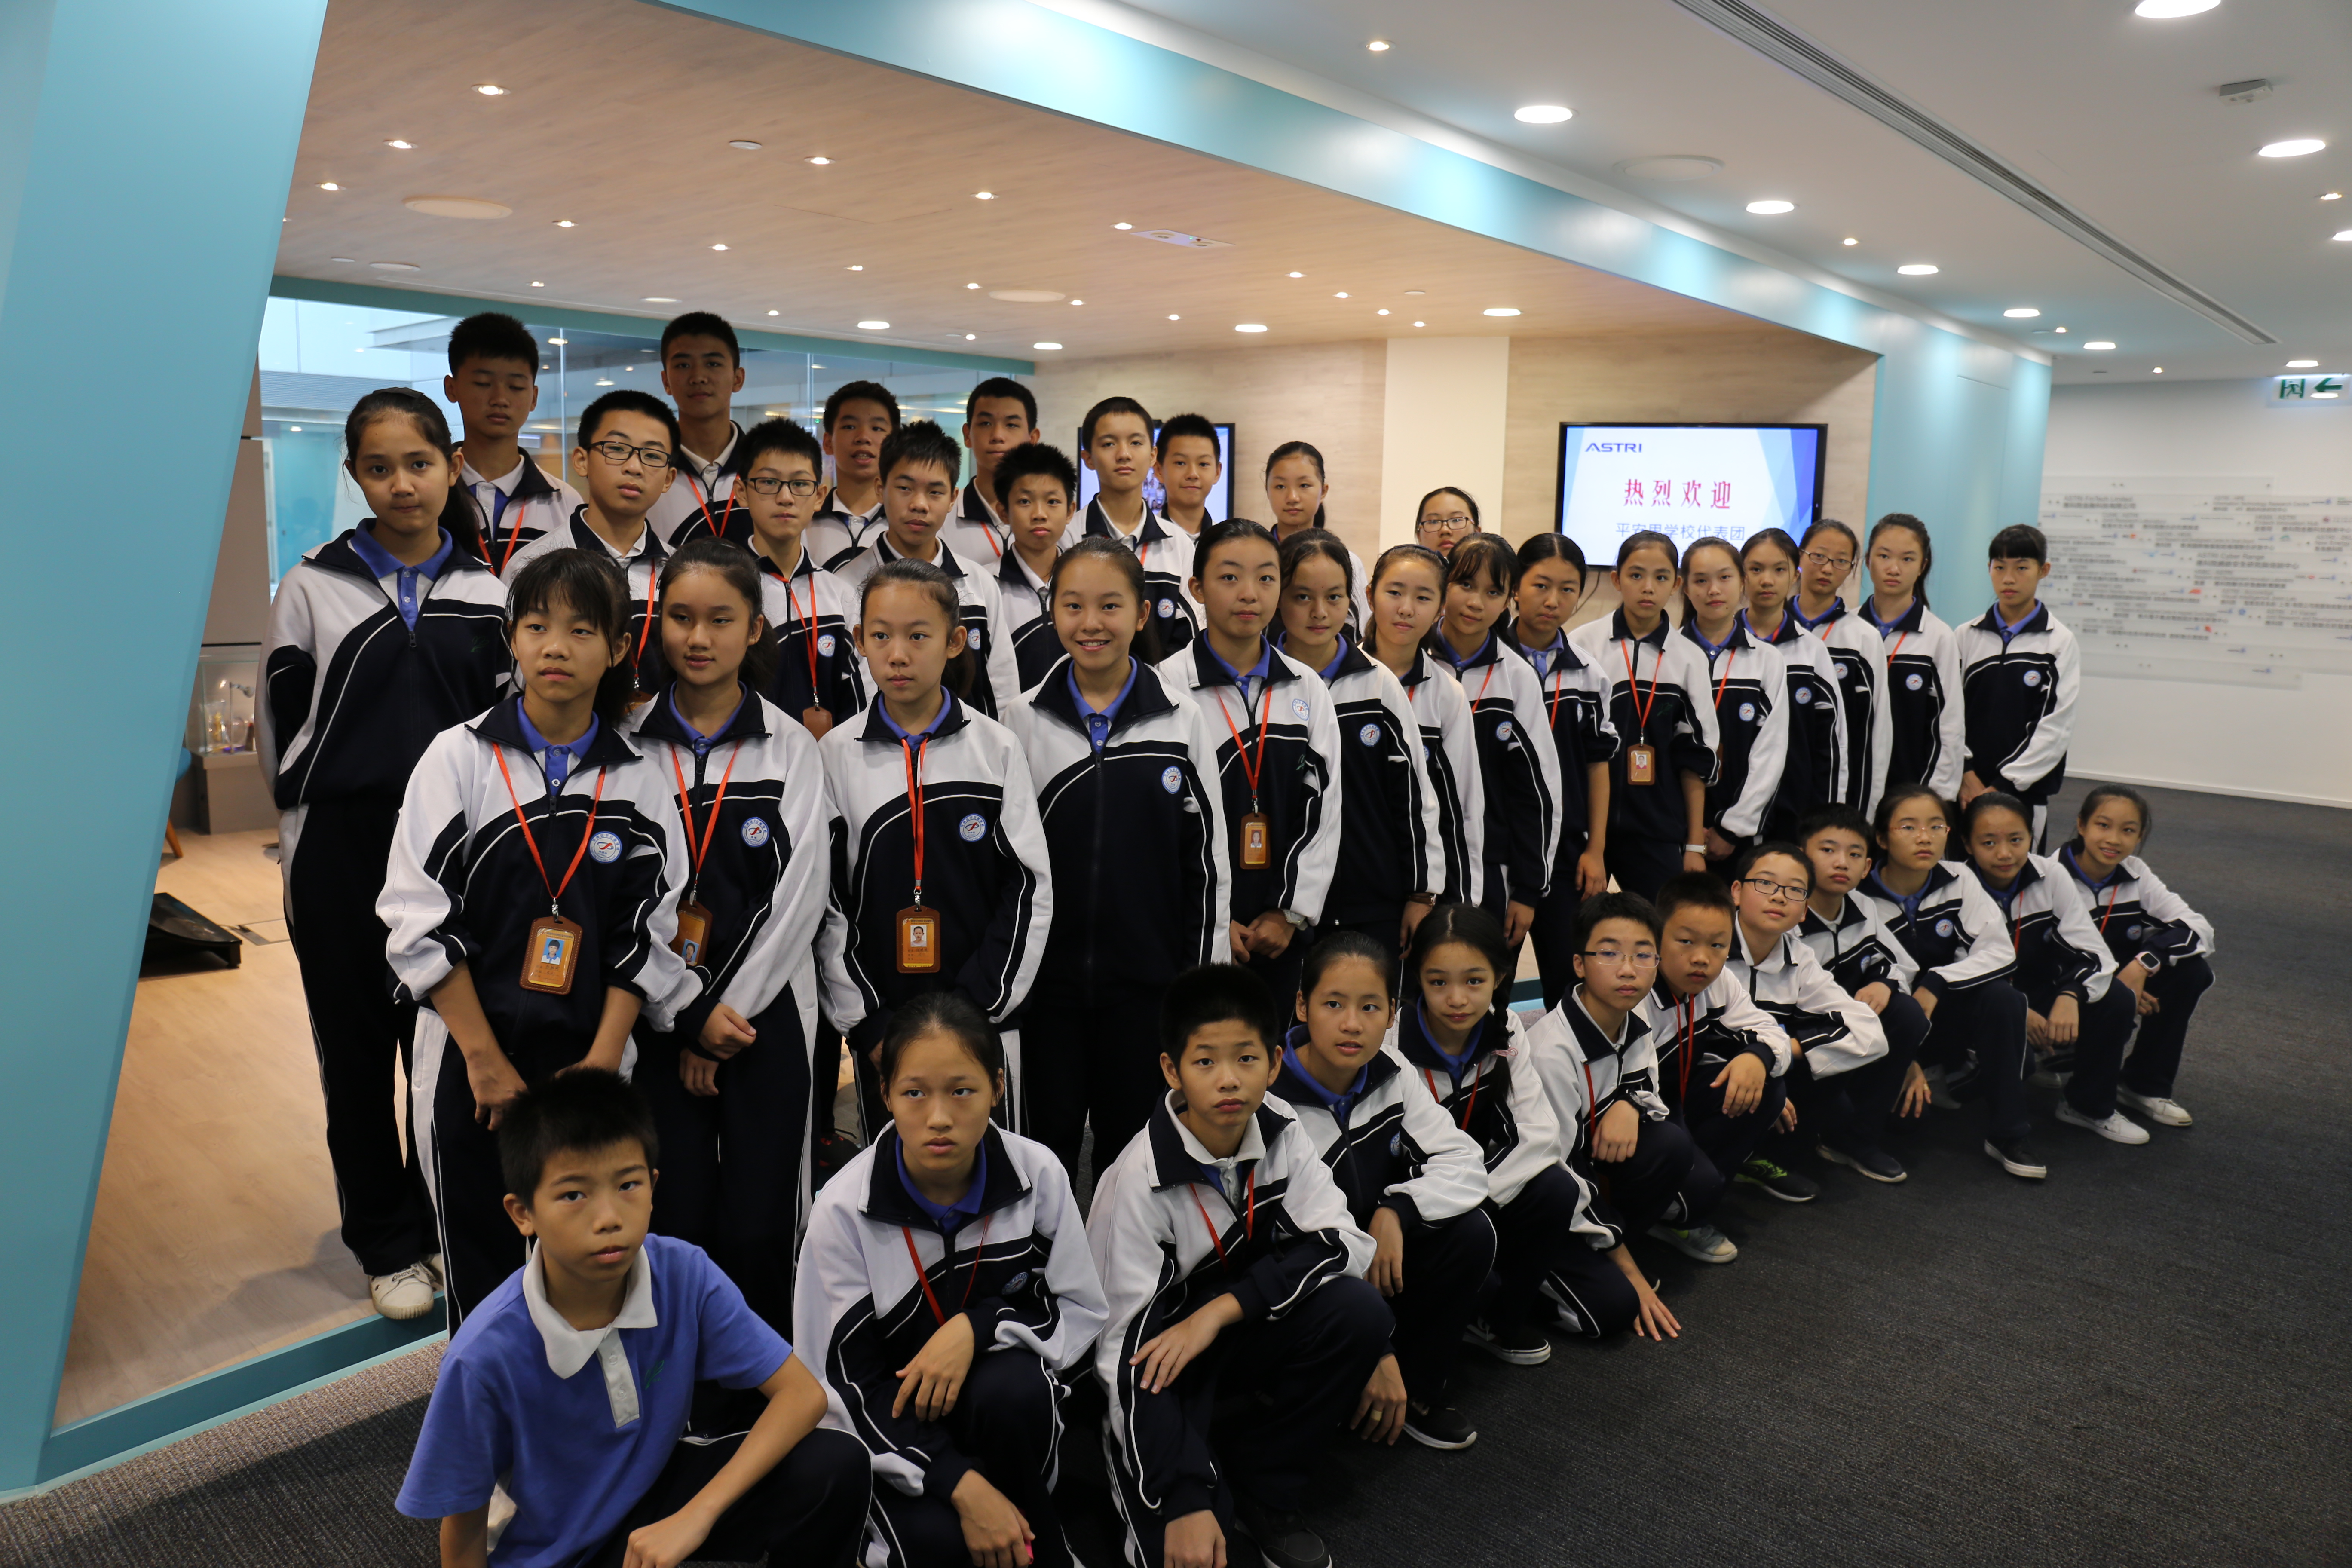 Wing Han Education Foundation arranges students from Ping'an School, Shenzhen to visit ASTRI